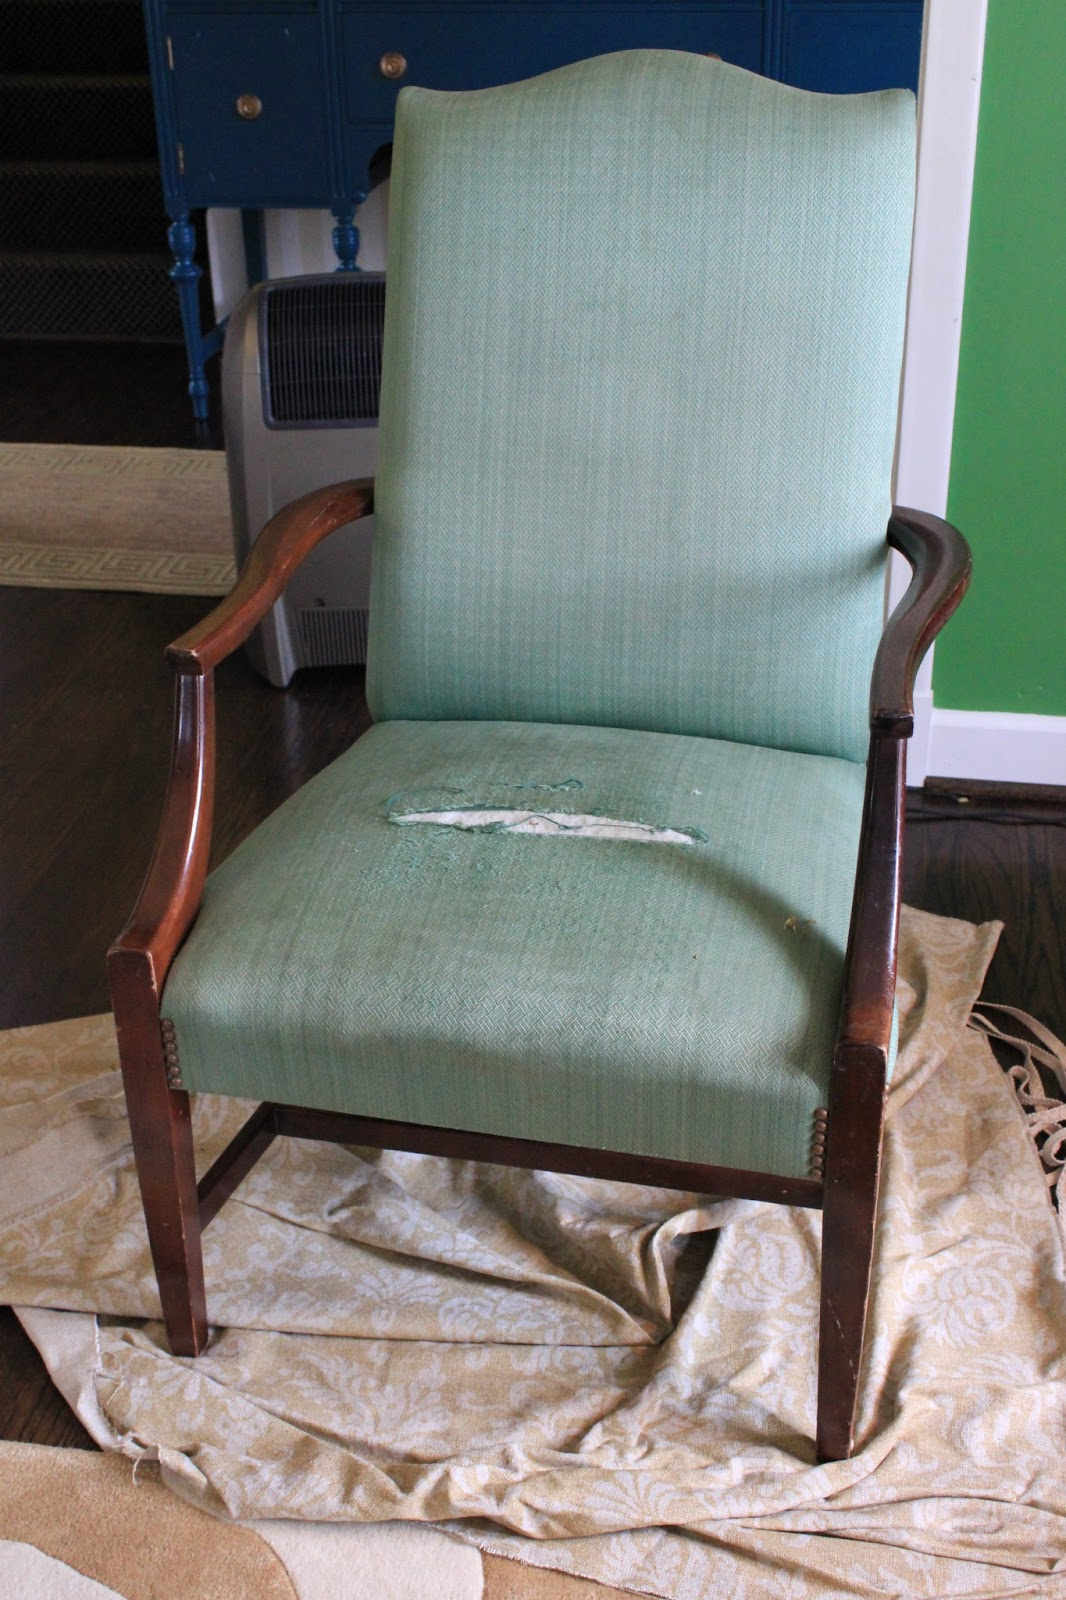 Westhampton DIY How to Reupholster a Chair